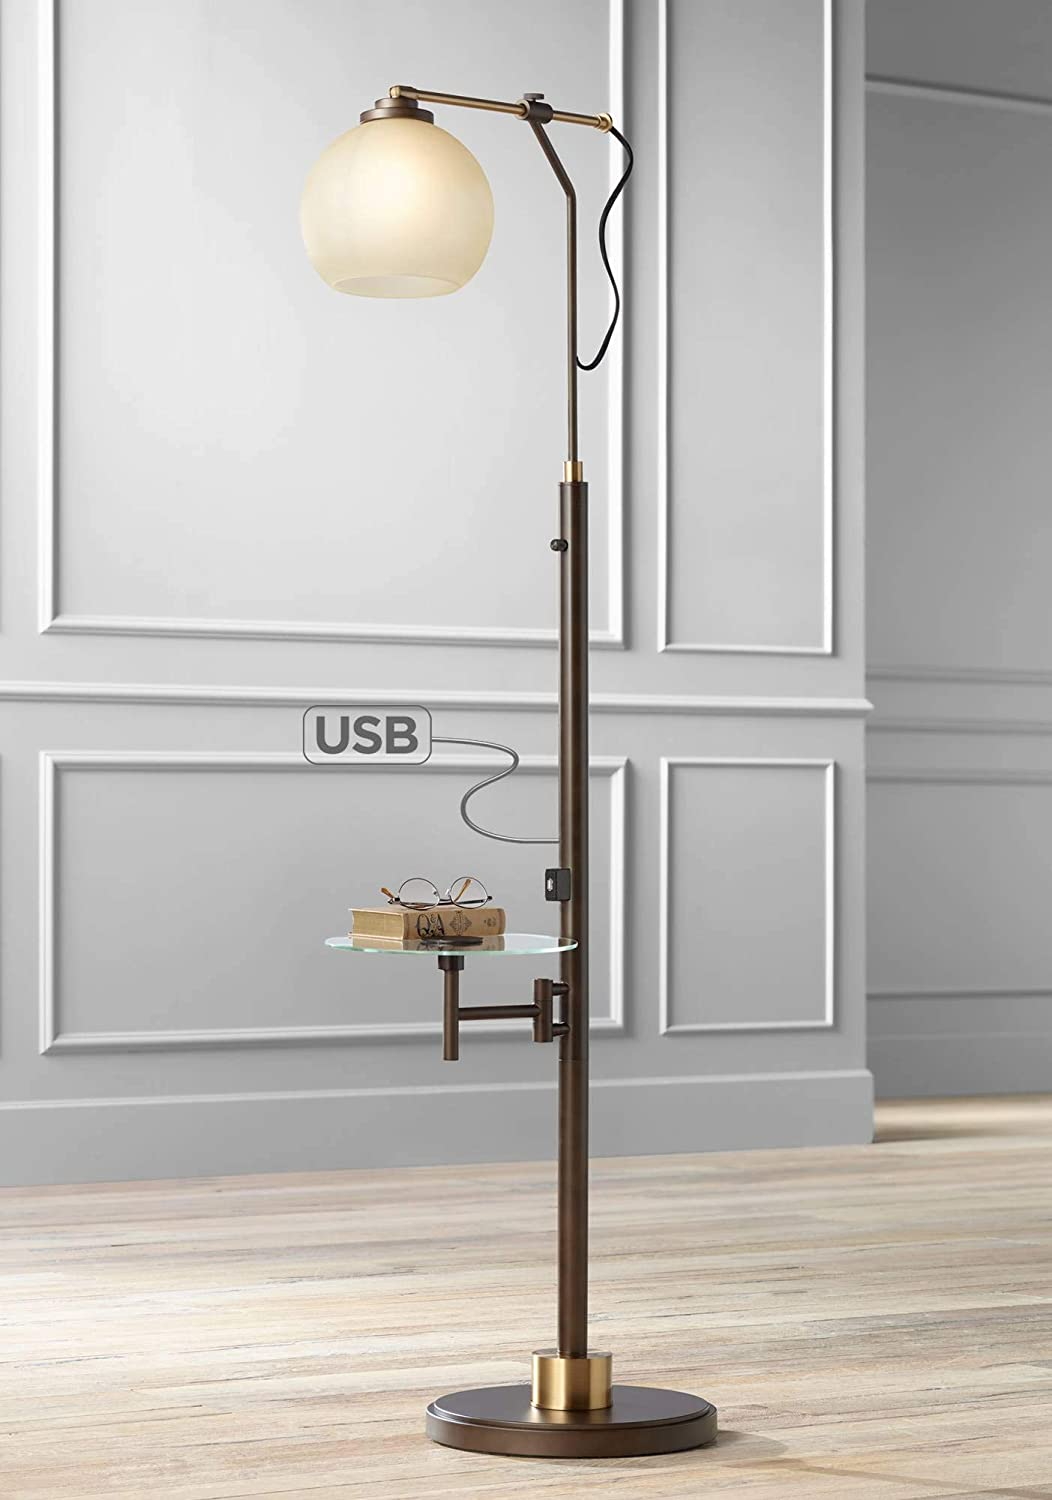 Jobe Modern Industrial Floor Lamp with Table Glass USB Charging Port Oiled Bronze Tea Glass Shade for Living Room – Franklin Iron Works